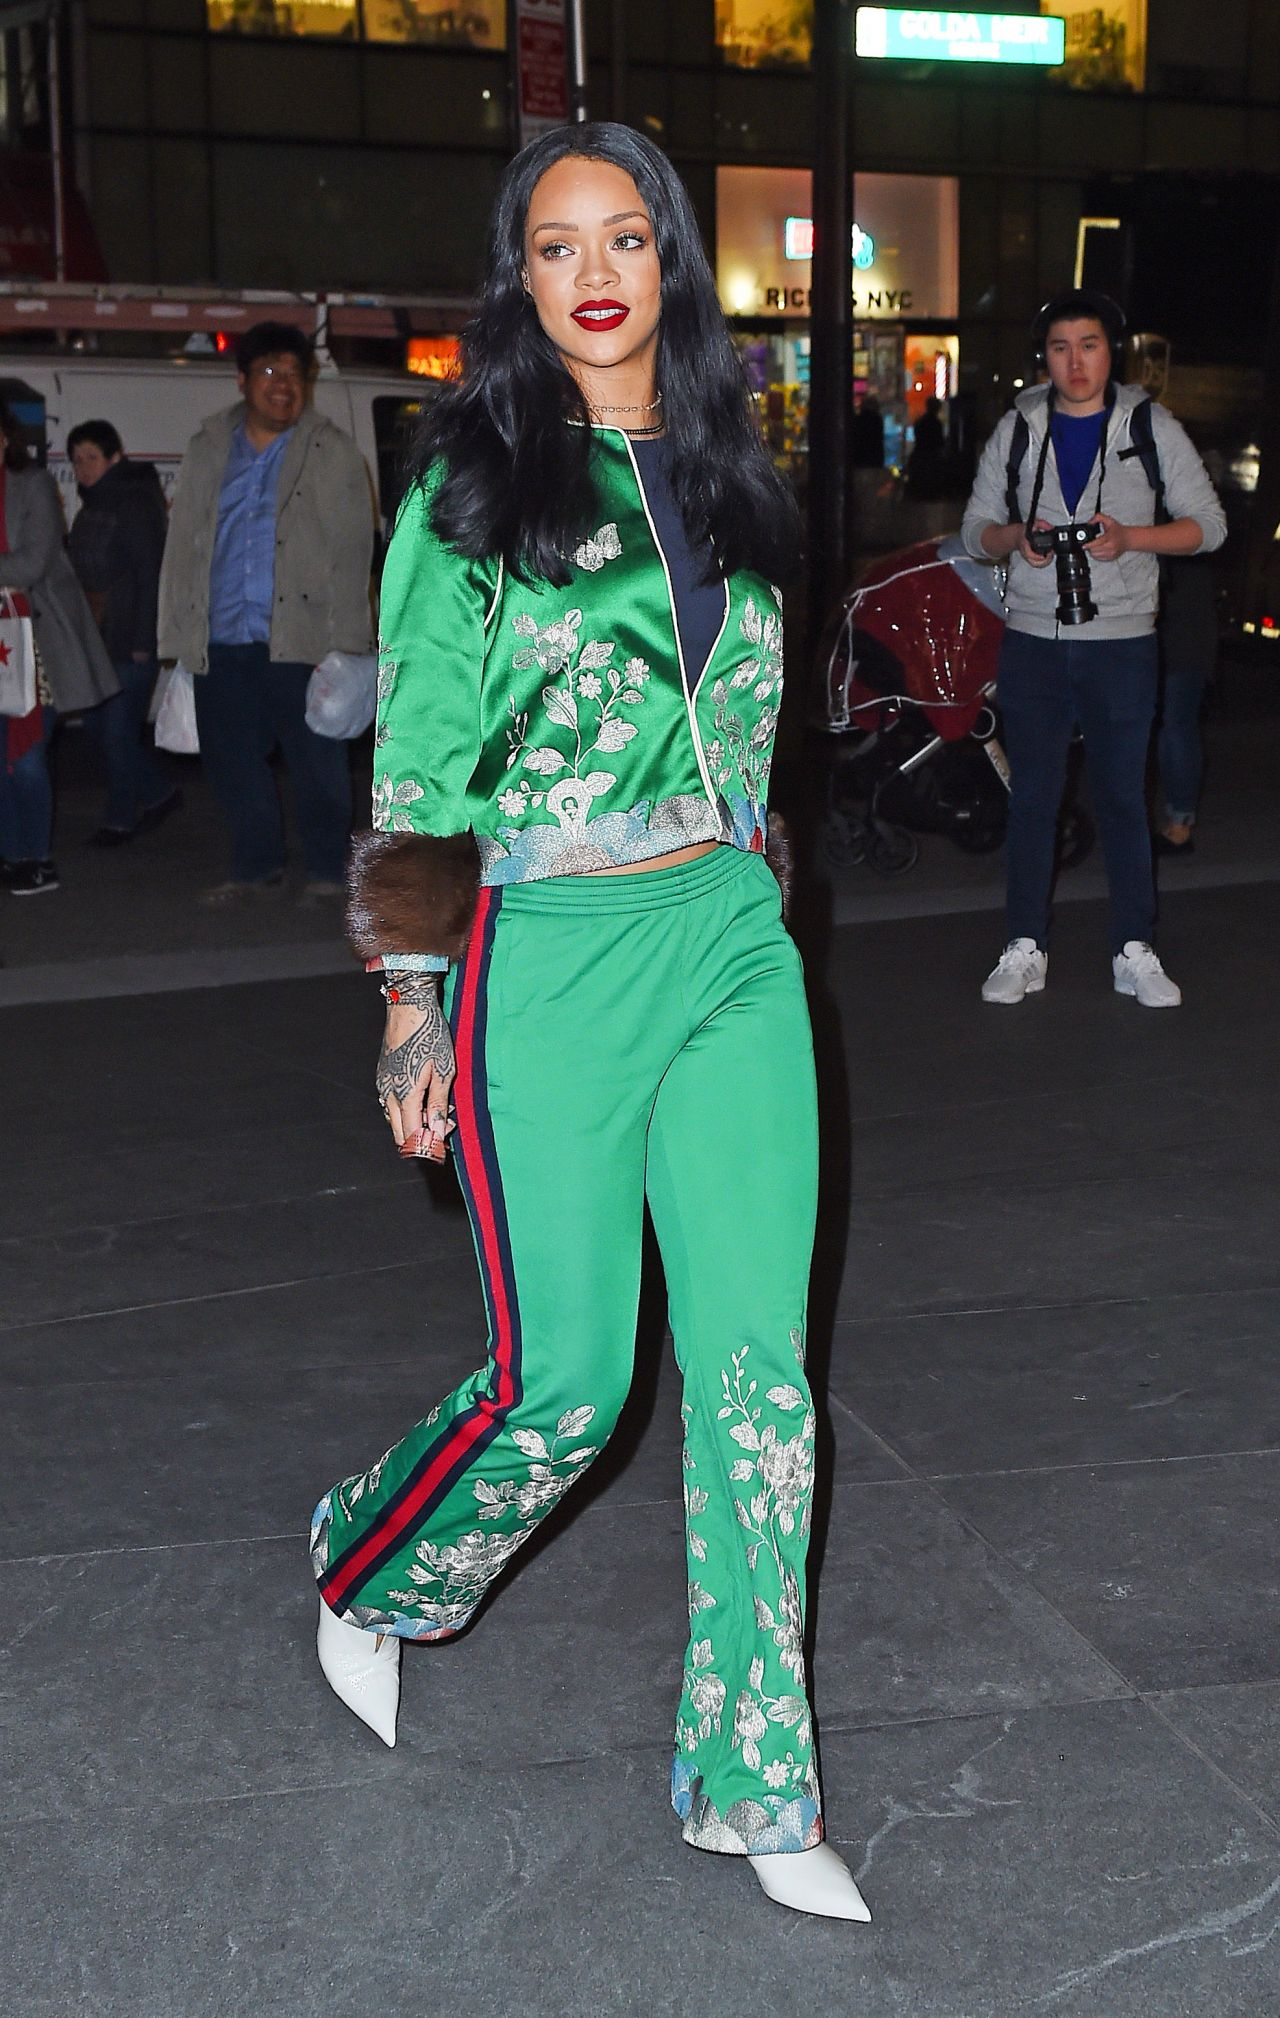 rihanna-looks-great-in-green-out-in-new-york-city-3-28-2016-3